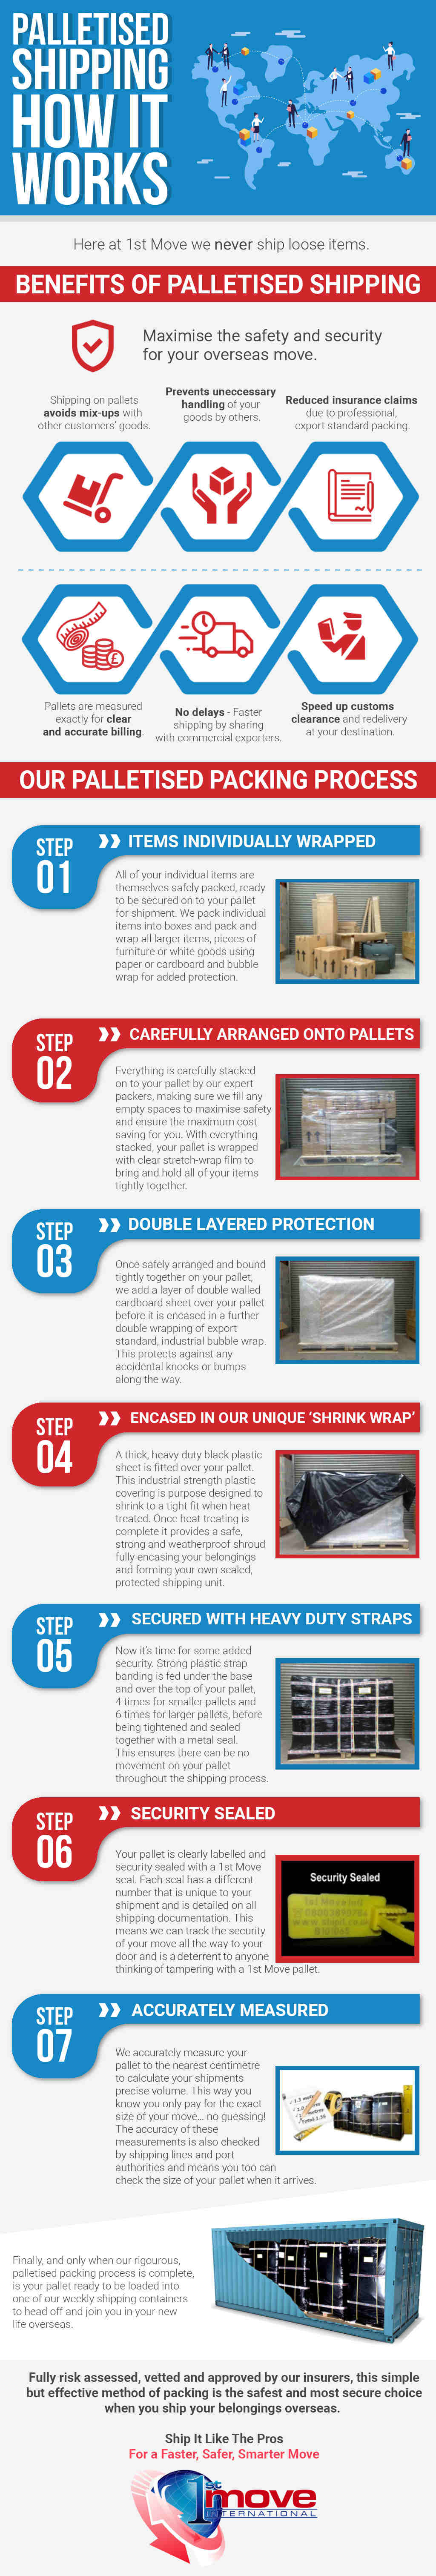 1st Move Palletised Shipping Infographic